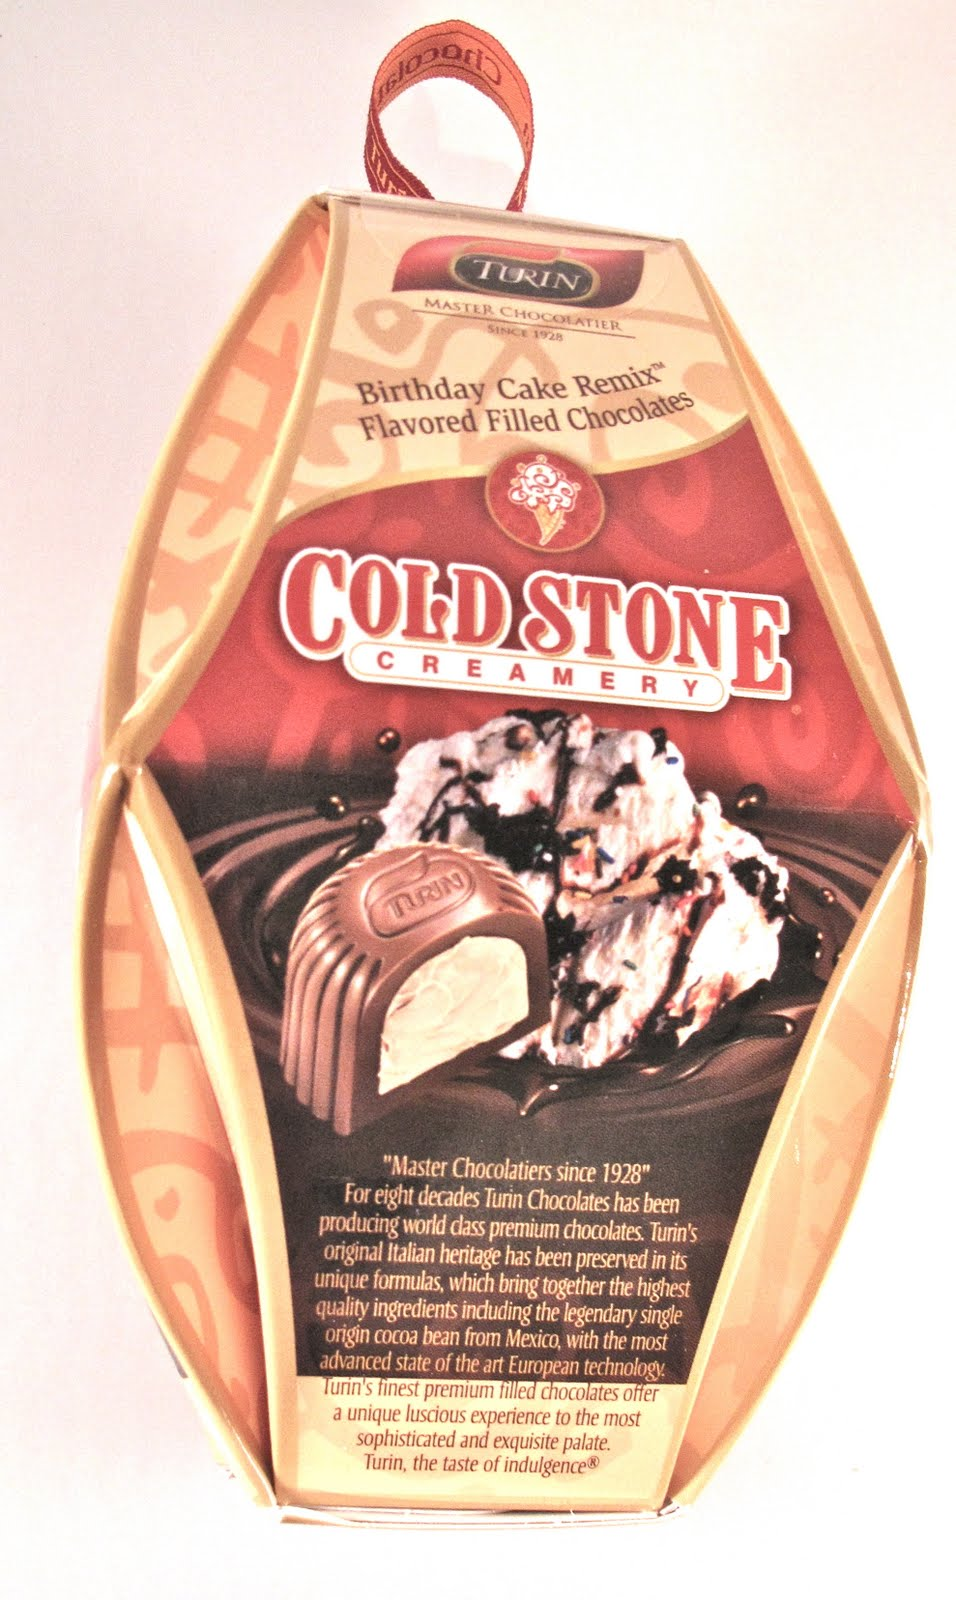 Obsessive Sweets Cold Stone Creamery Birthday Cake Remix Filled